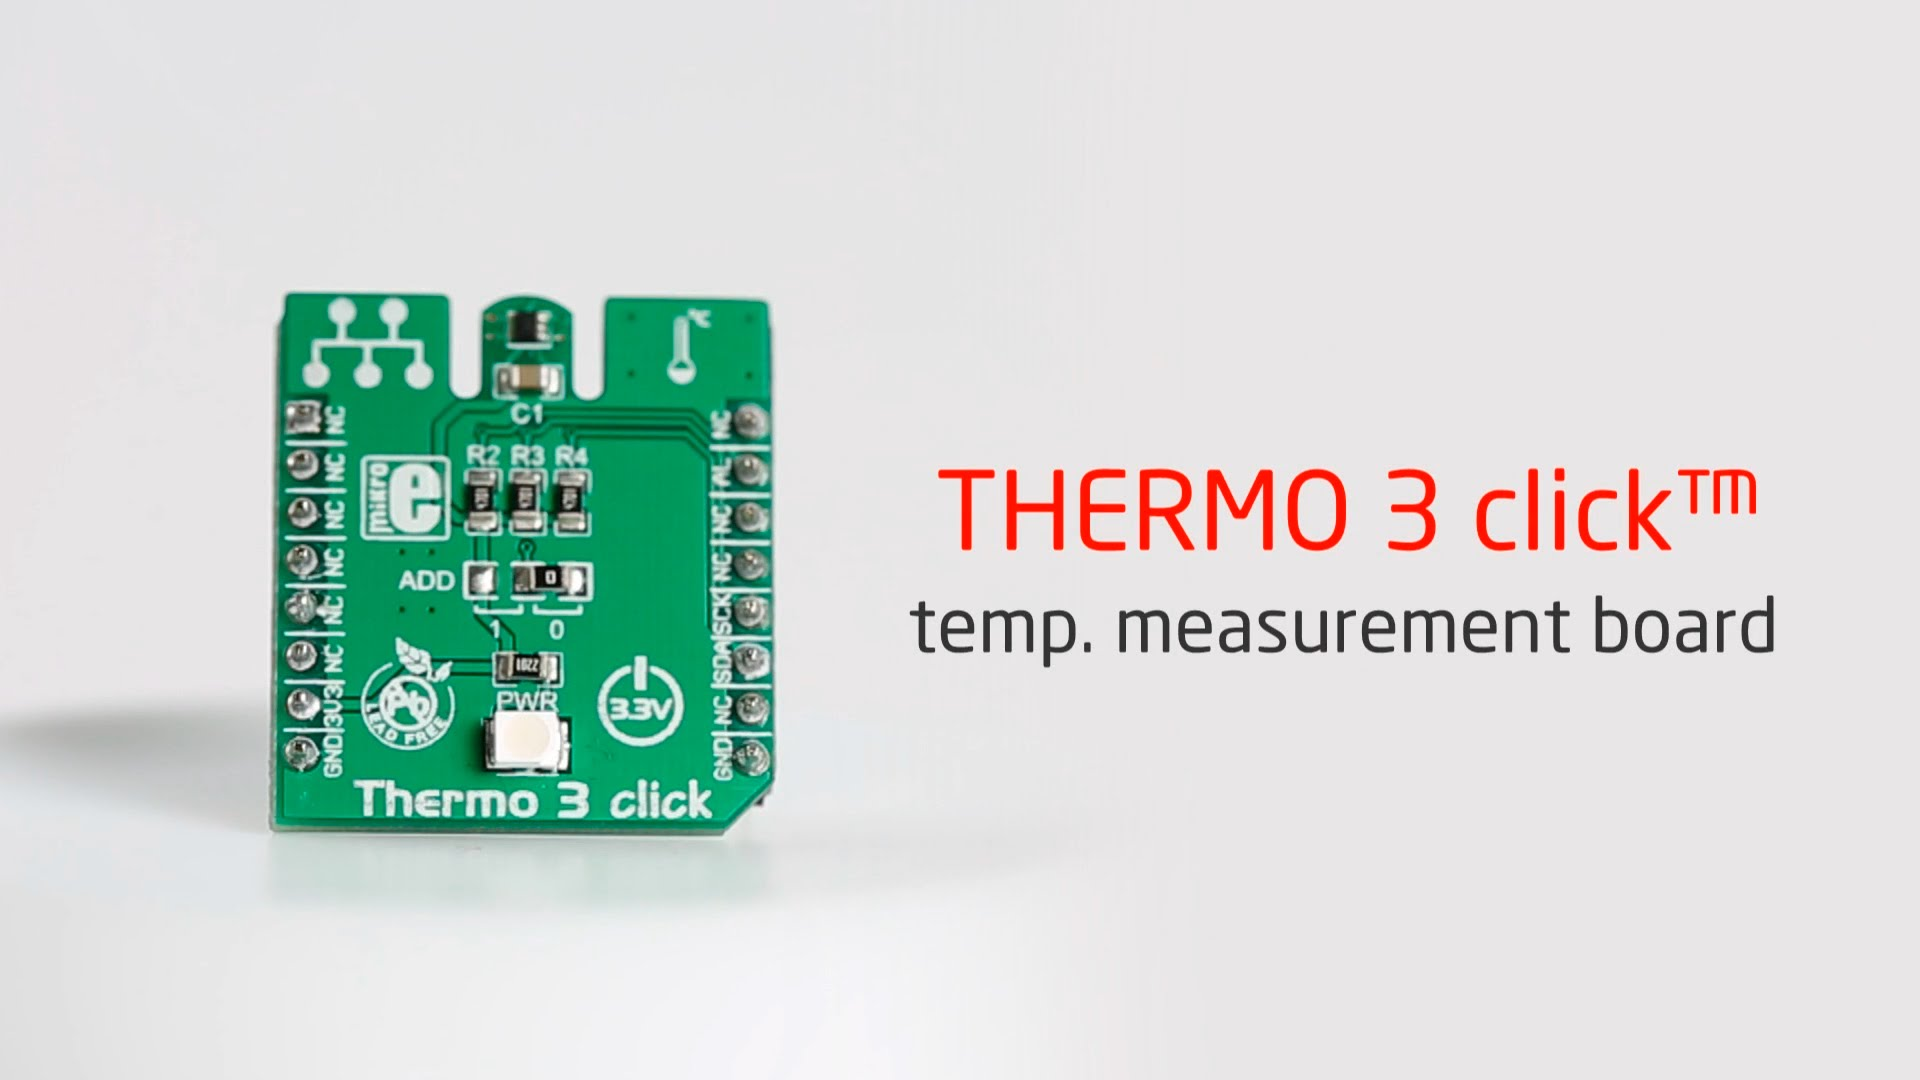 Thermo 3 click released